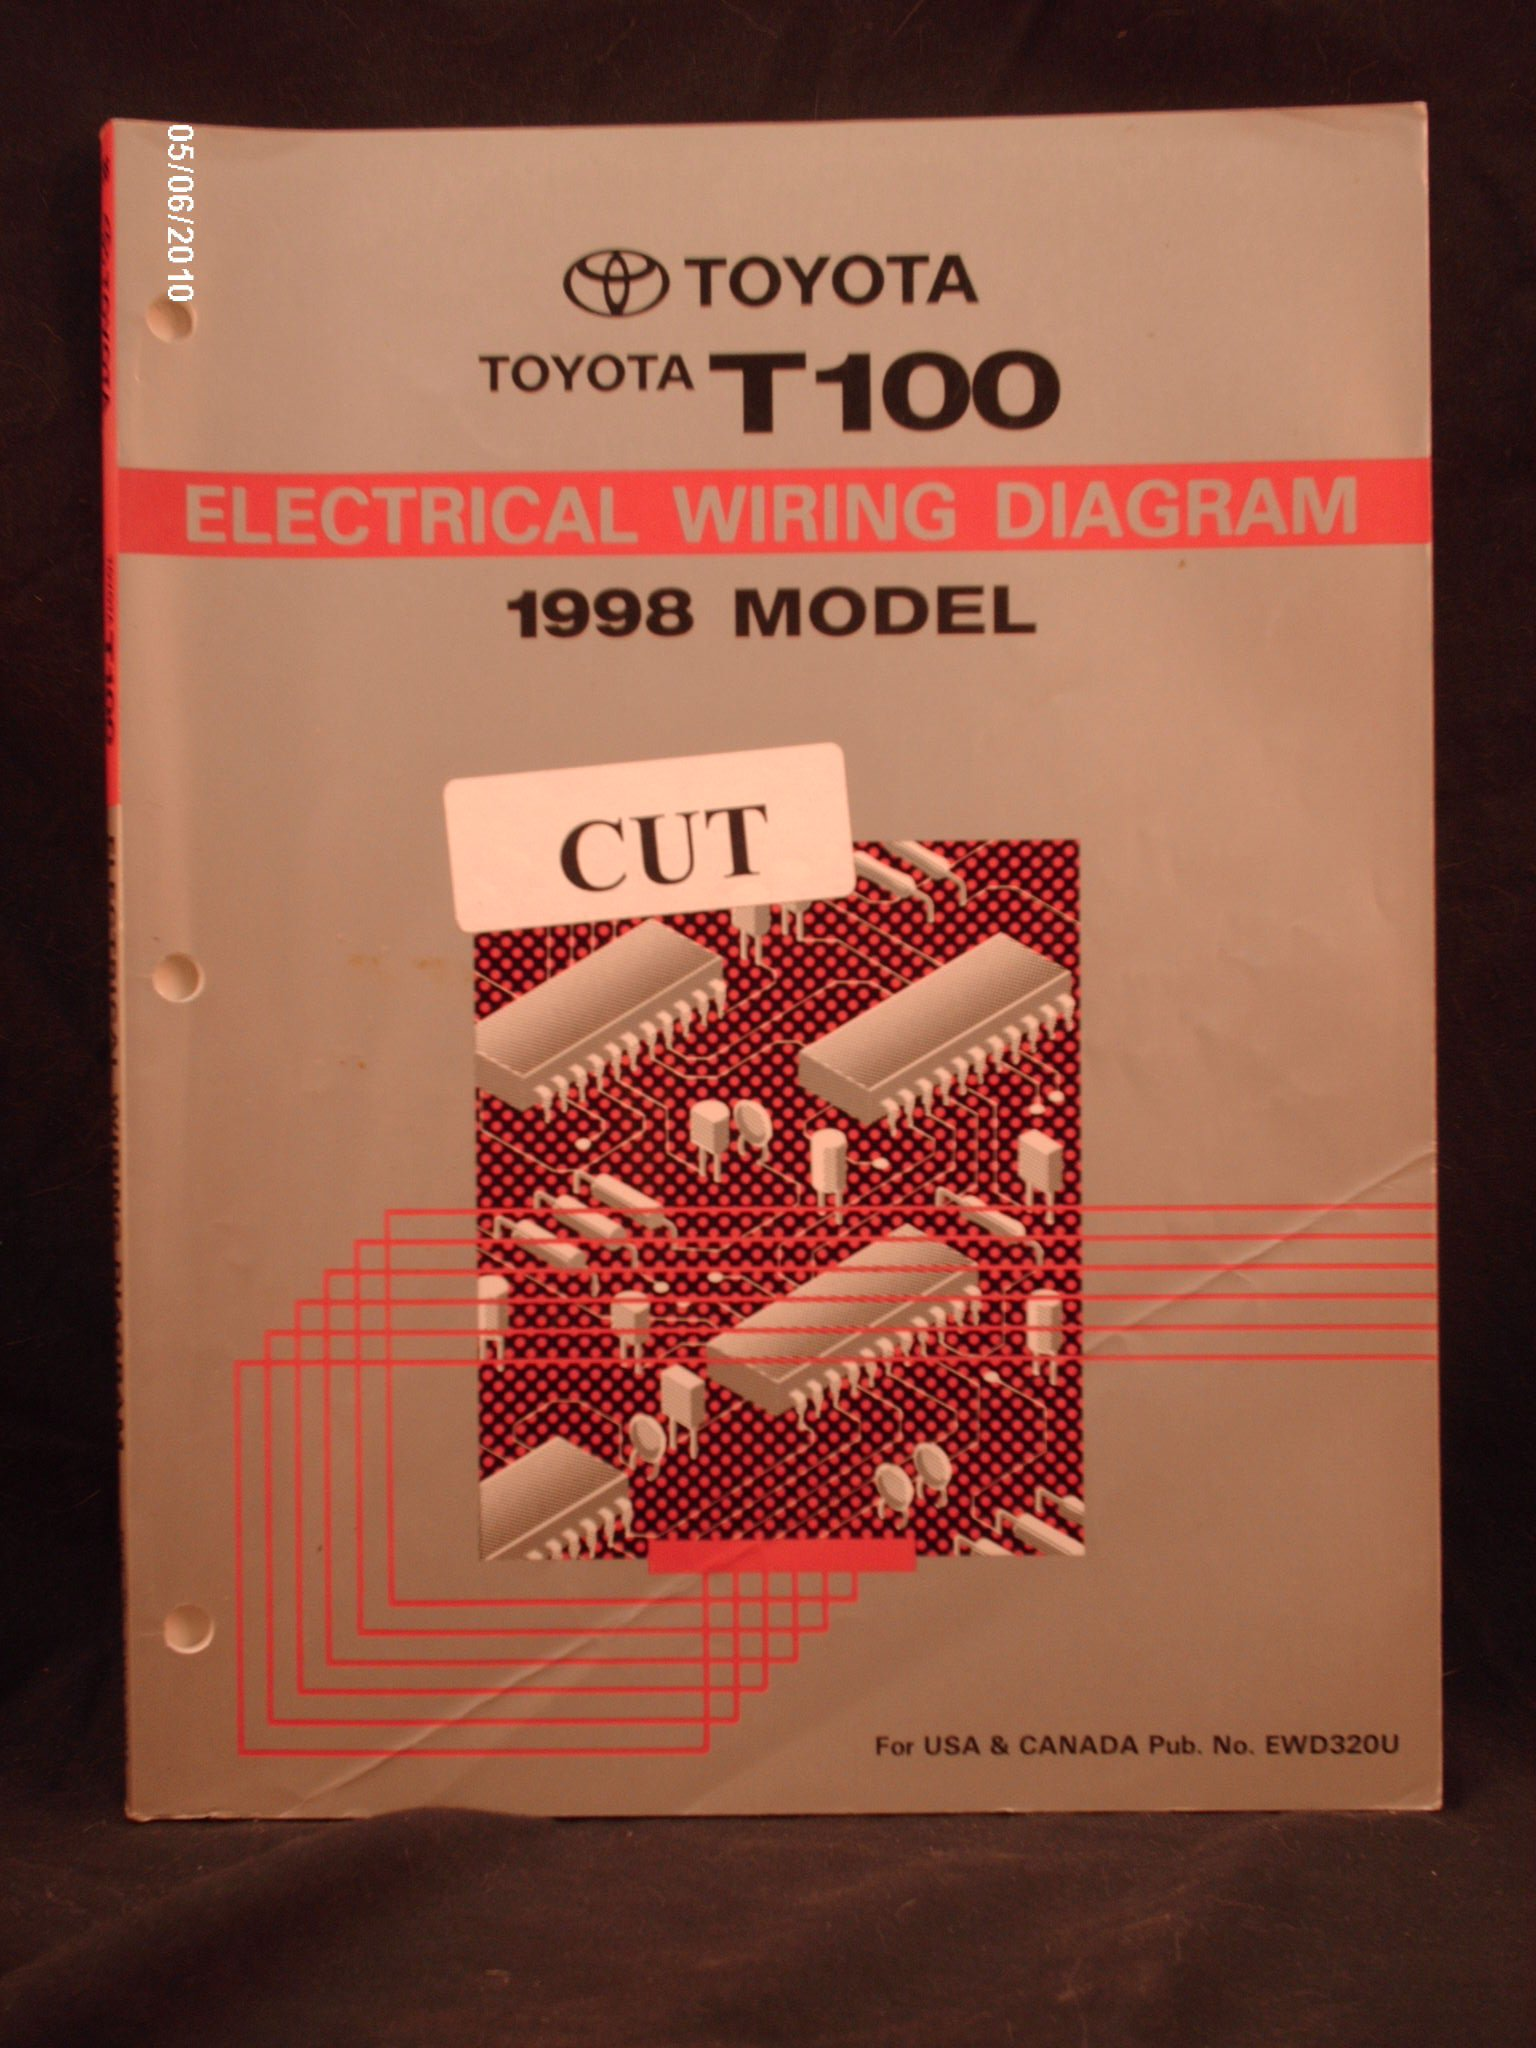 1998 toyota t100 engine diagram 1998 toyota t100 electrical wiring diagram shop repair manual  1998 toyota t100 electrical wiring